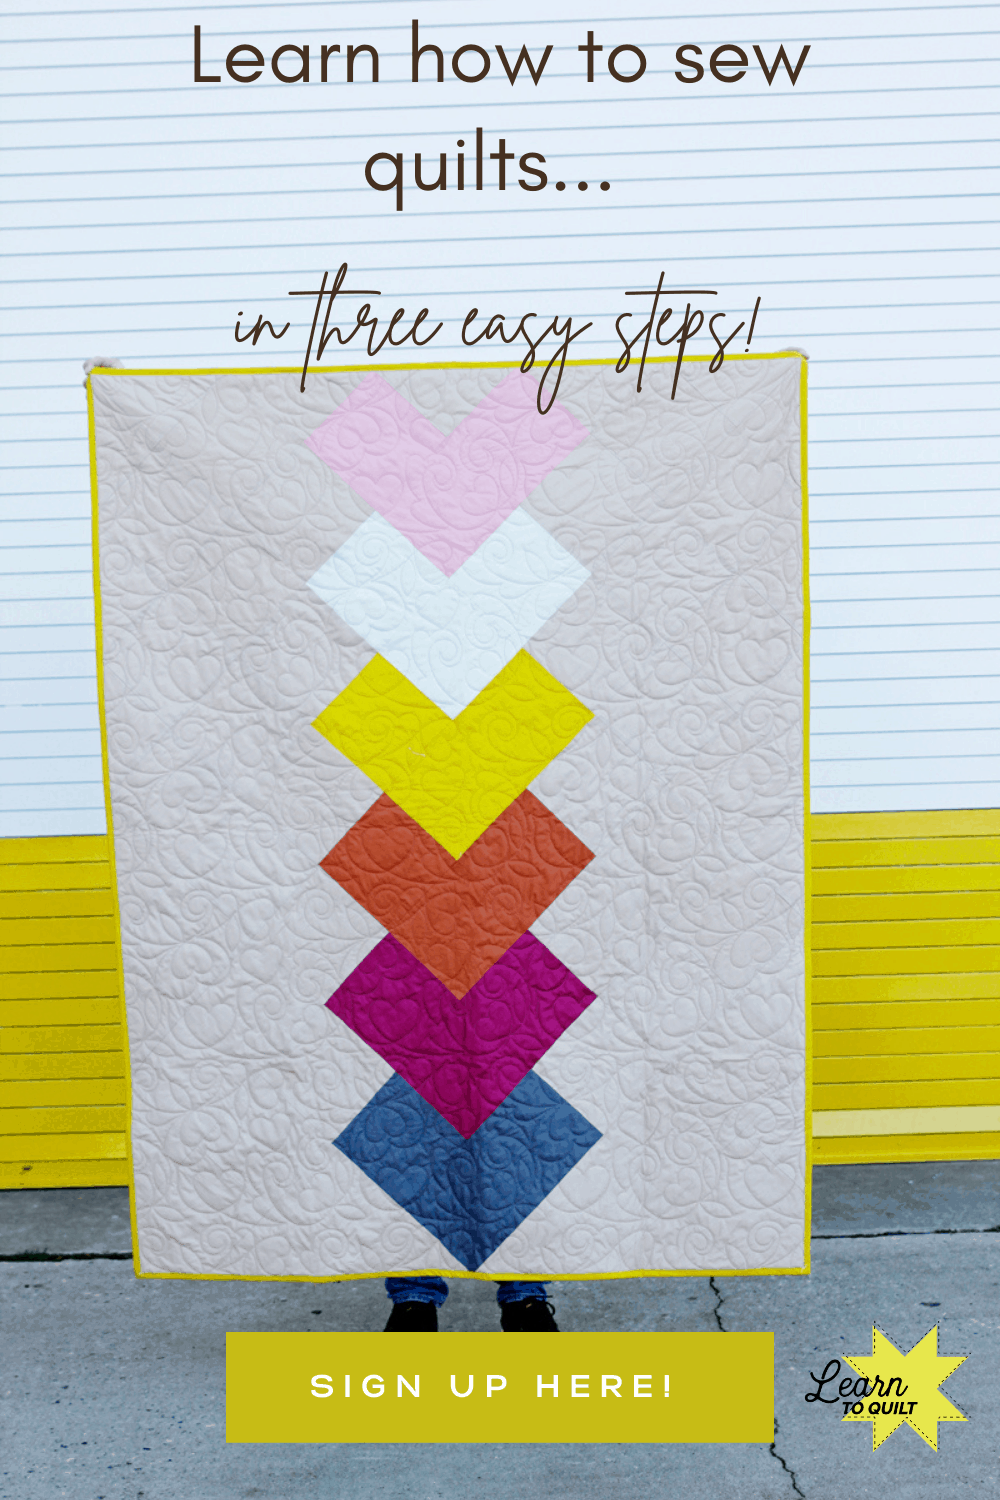 Sewing Quilts for Beginners | Learn to Quilt | Sewing